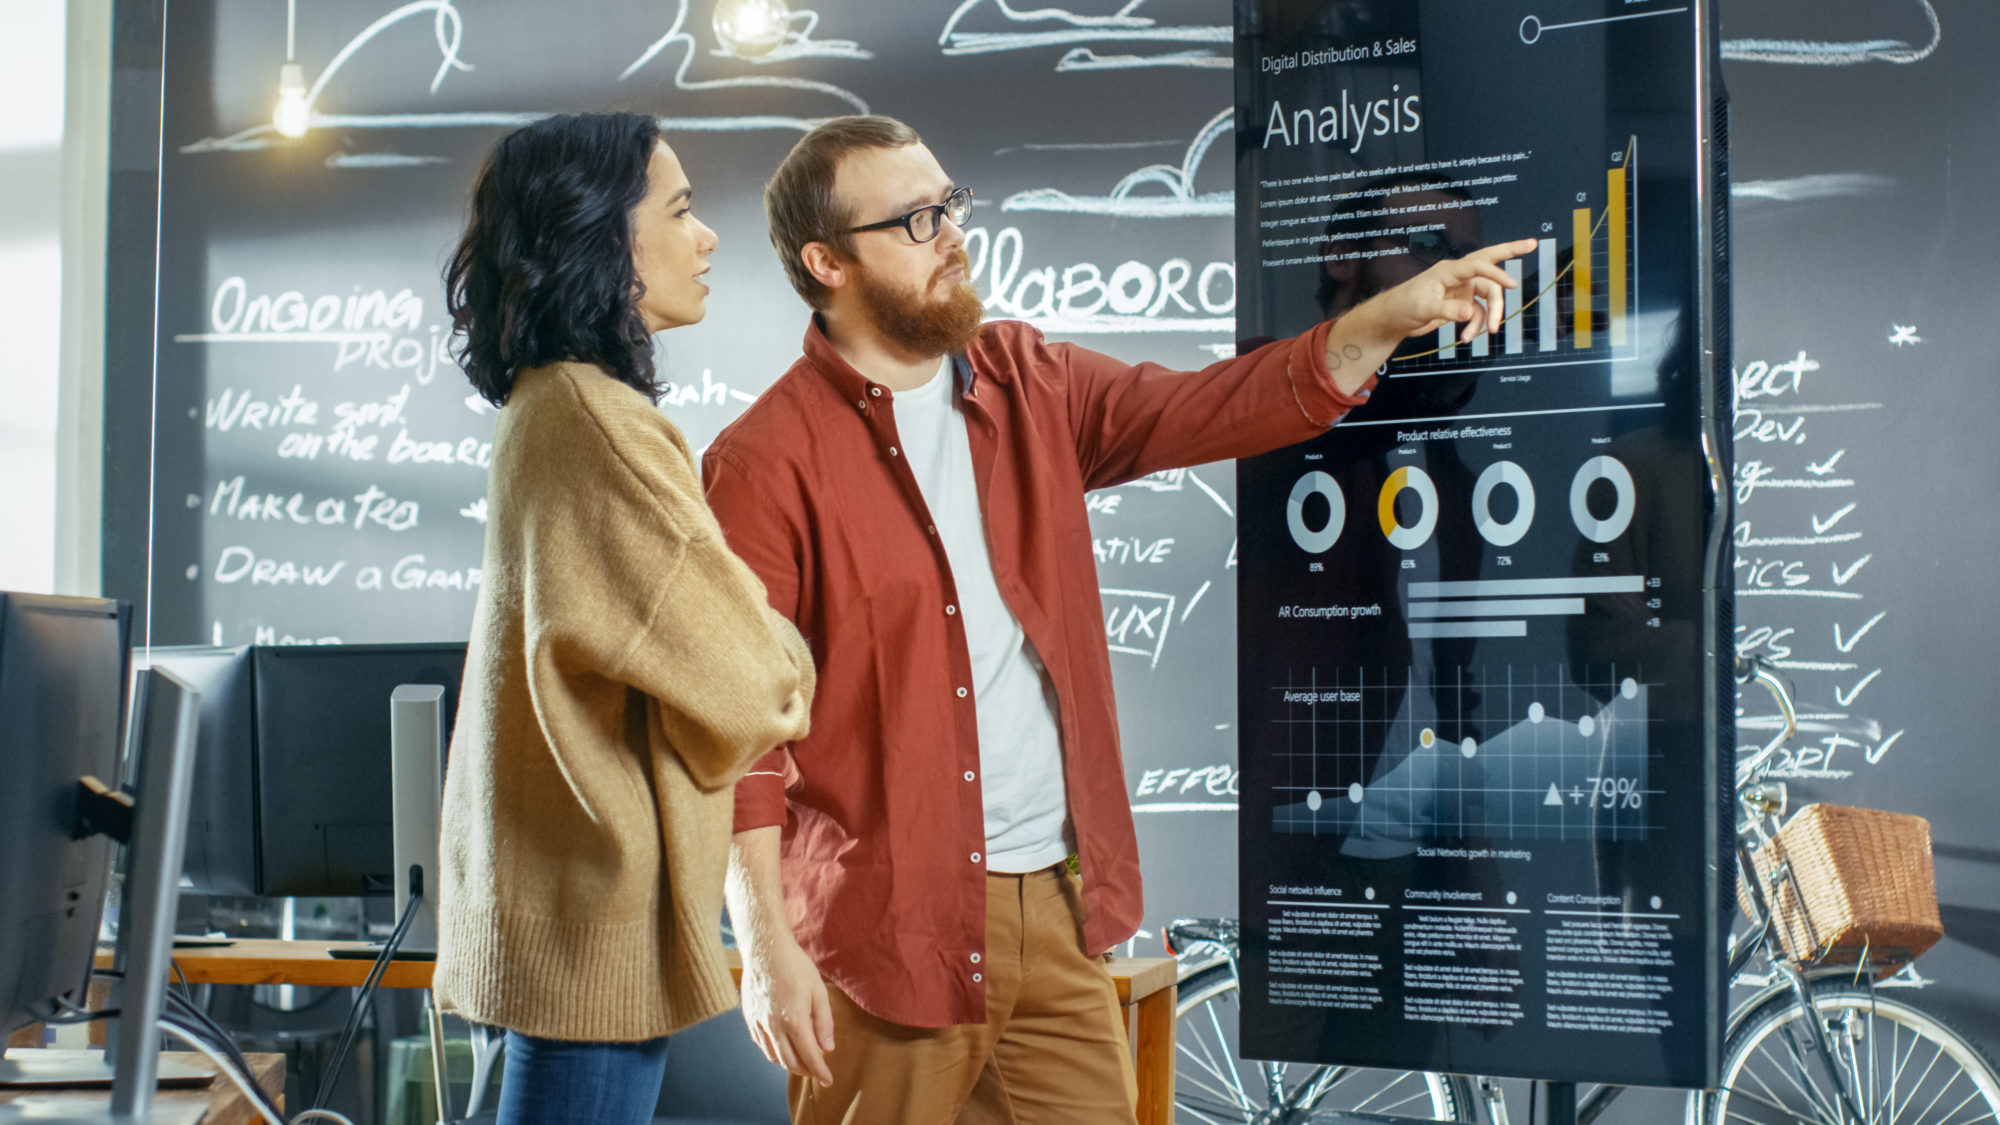 2020 Marketing Statistics that will you blow your mind